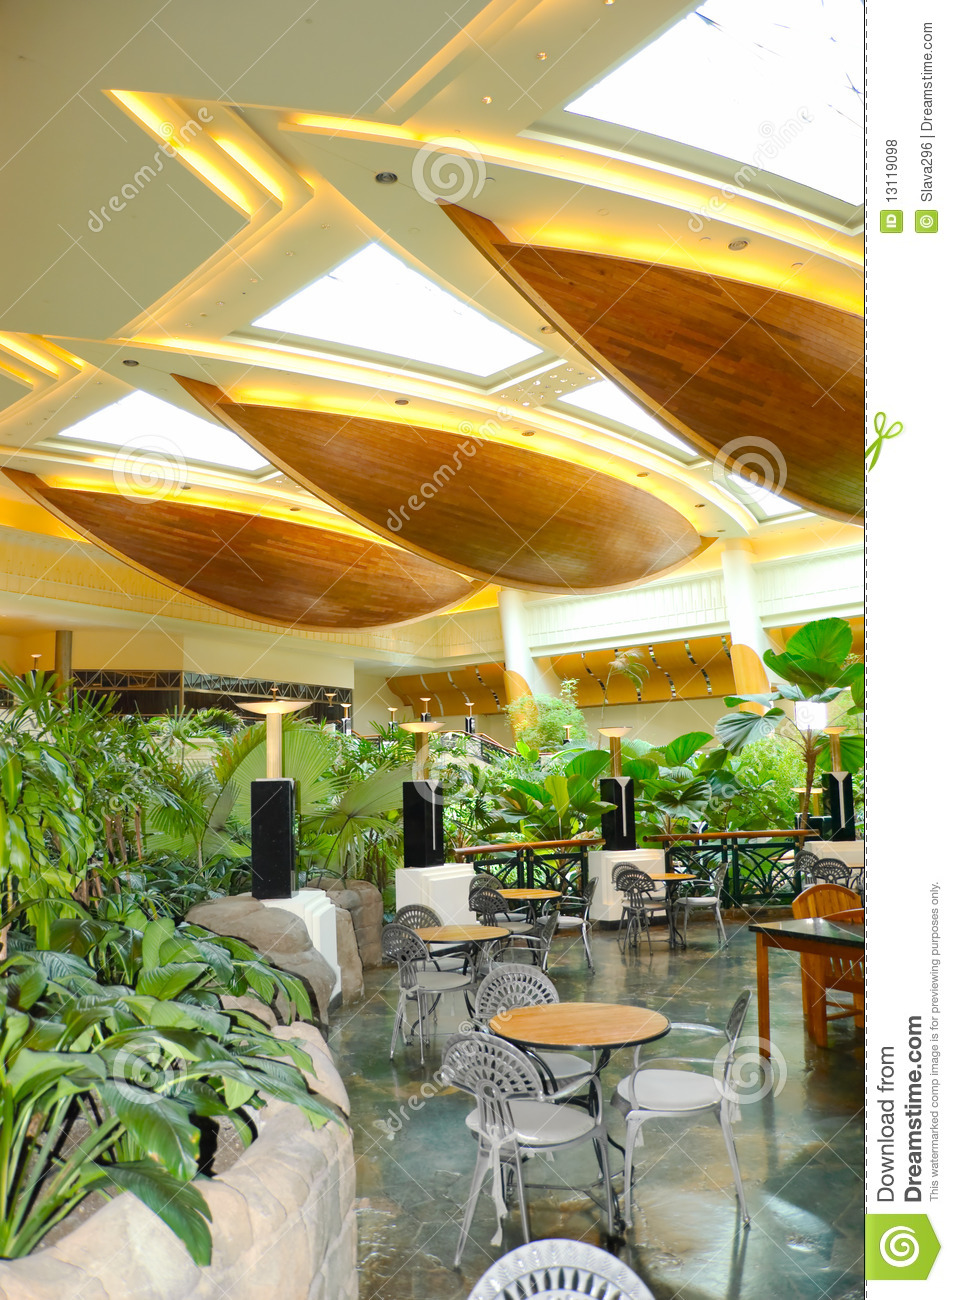 more similar stock images of reception lobby area in luxury hotel